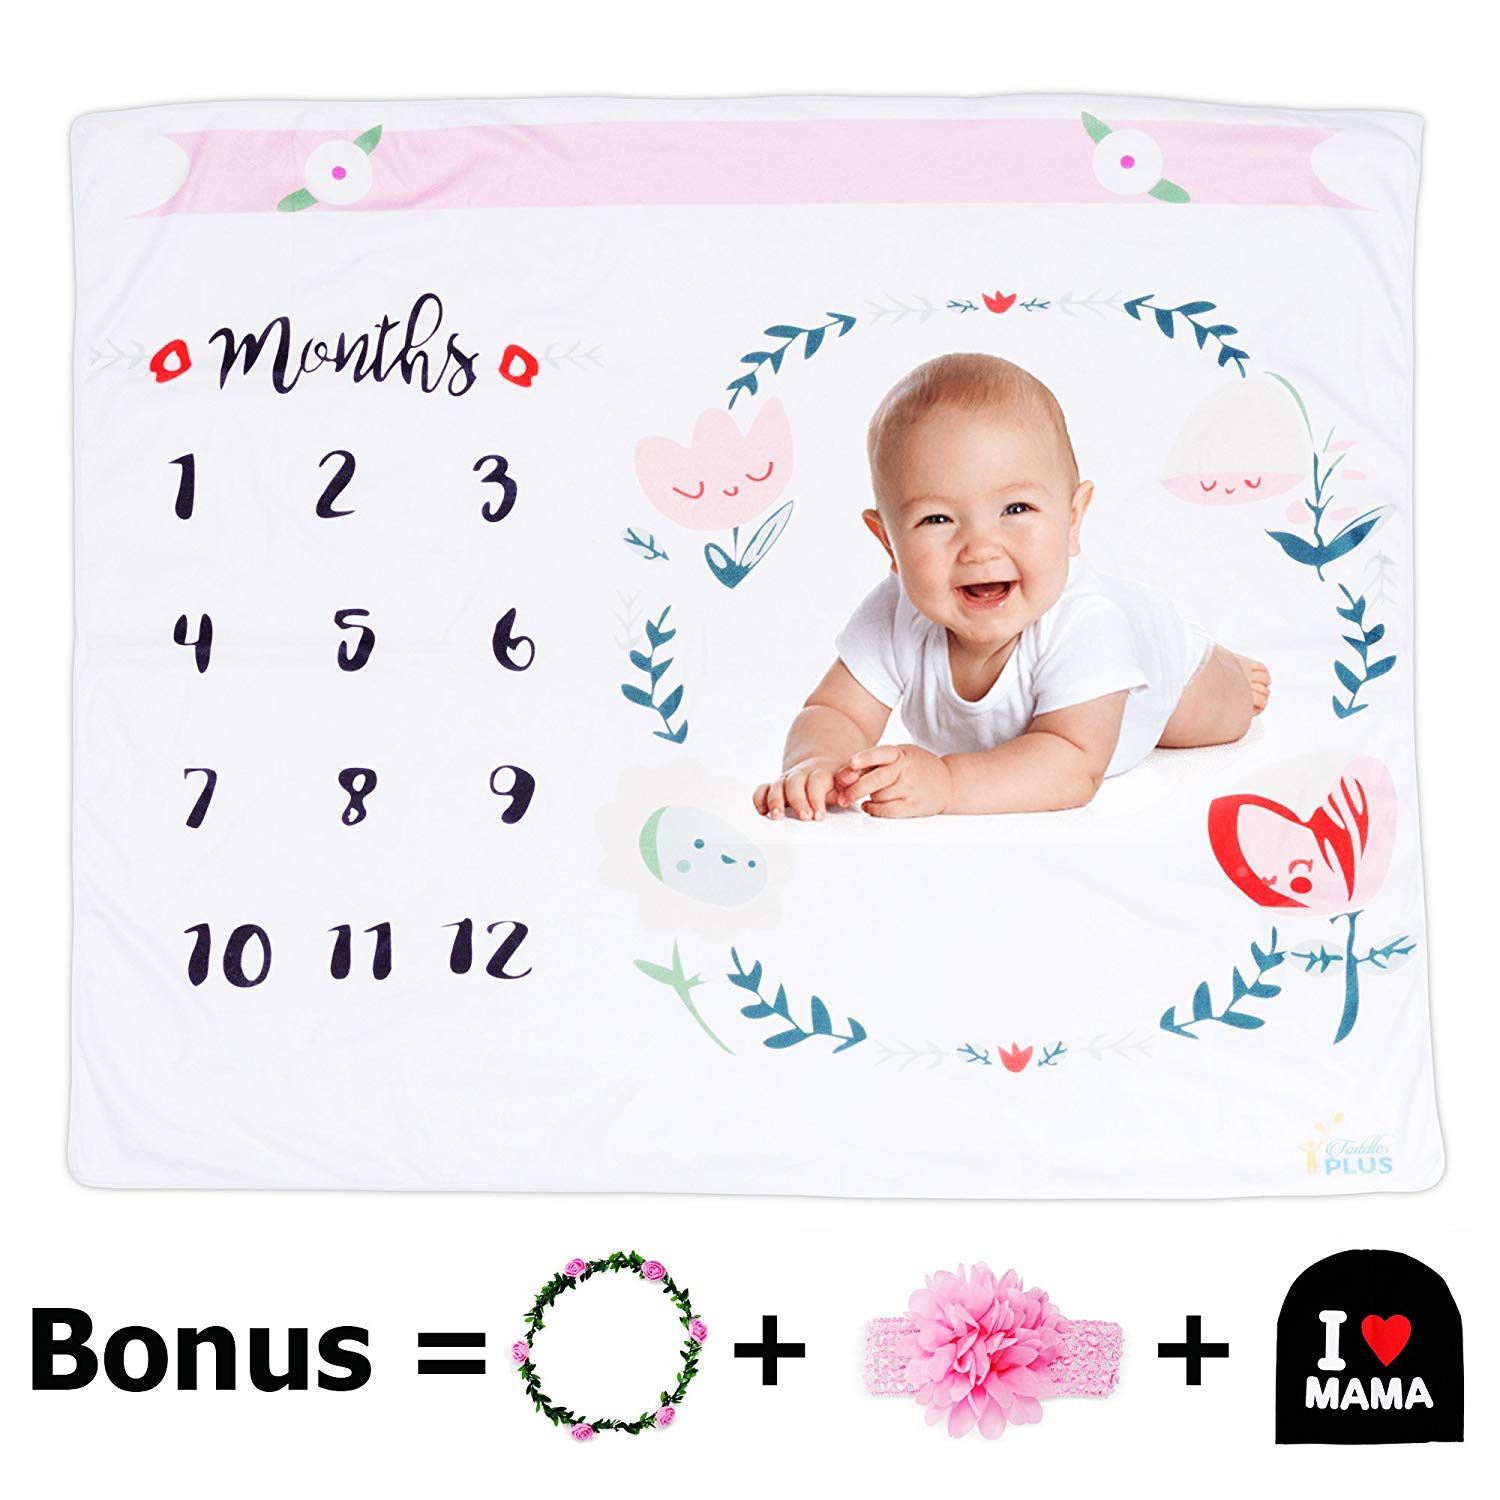 "Monthly Baby Milestone Blanket |Premium Bundle Includes Headband, Floral Wreath & Bonus Baby Hat |100% Blanket |Baby Swaddling Blanket for Photography Large 47"" x 47"" 